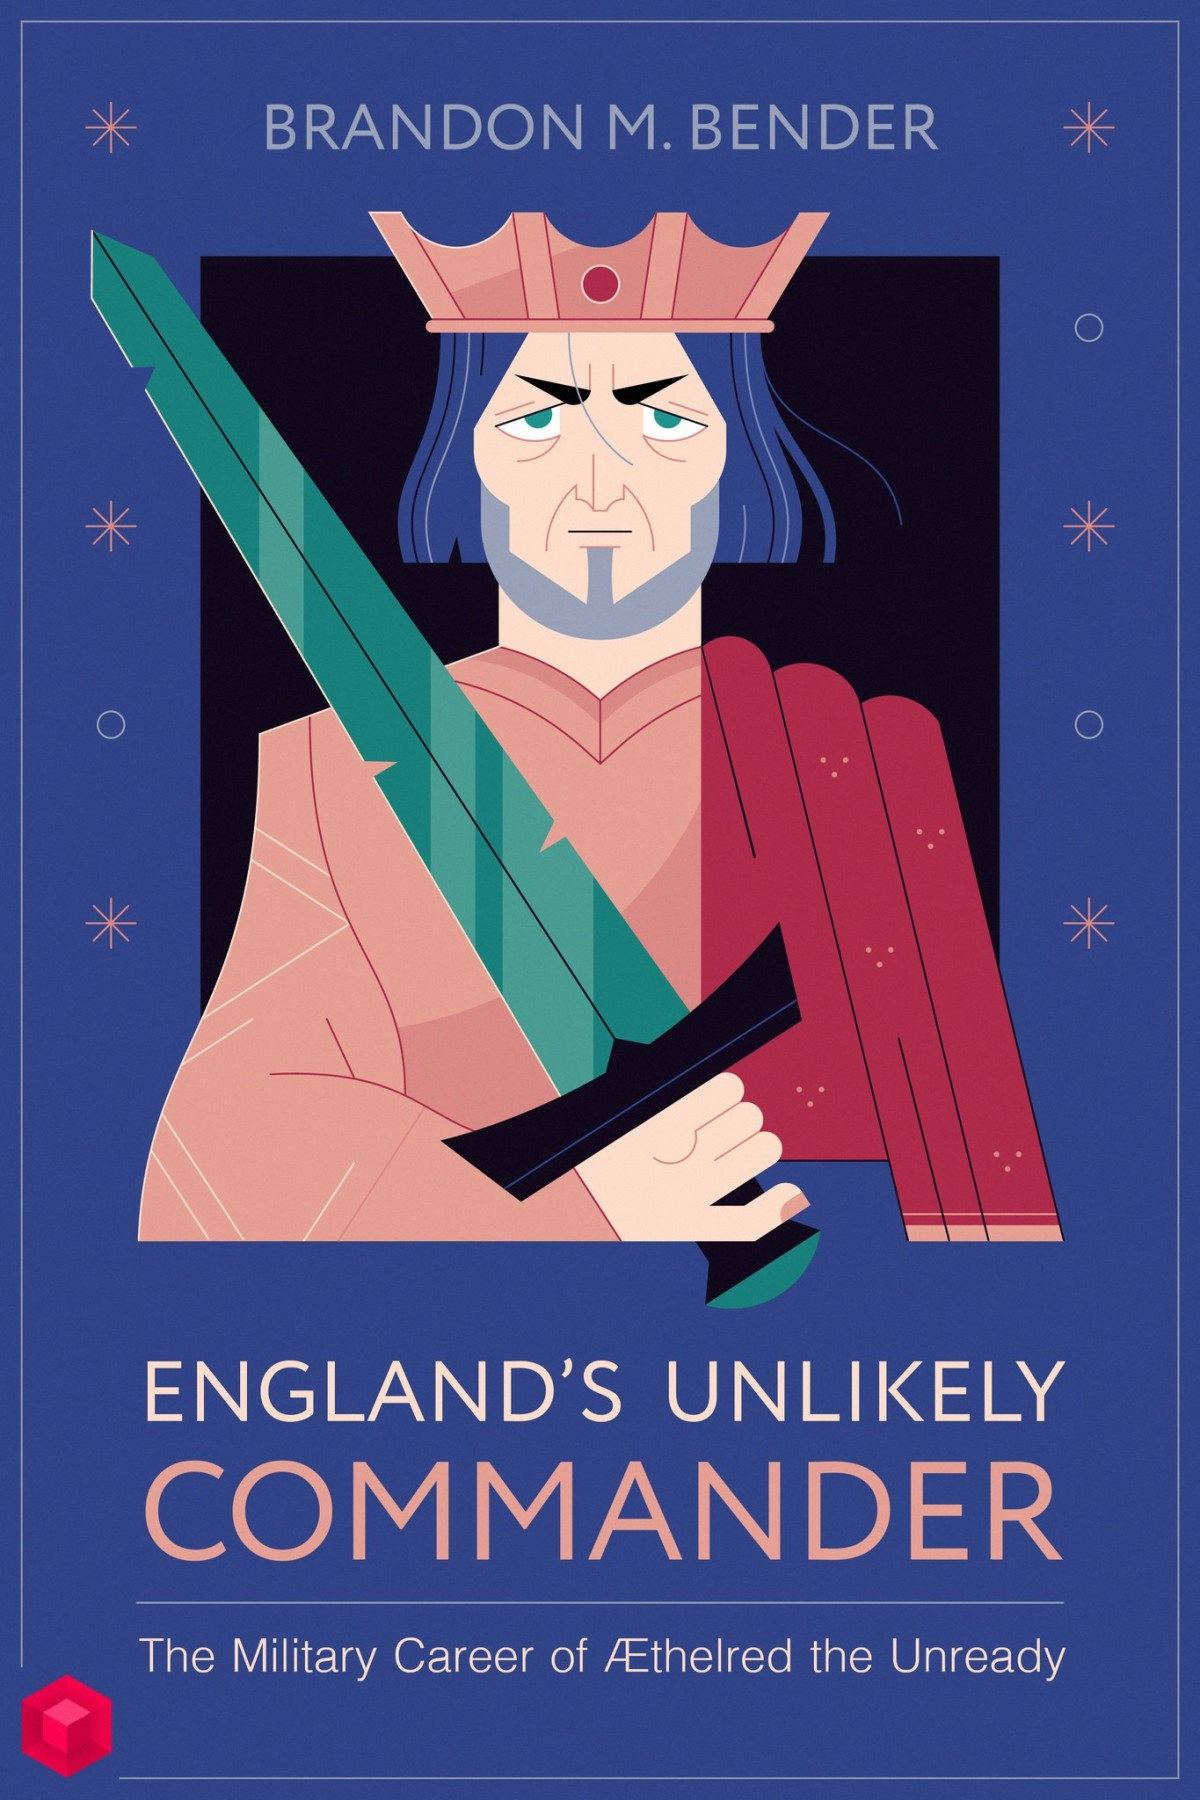 Æthelred the Unready: New Book Re-examines Infamous Anglo-Saxon King's Military Practices